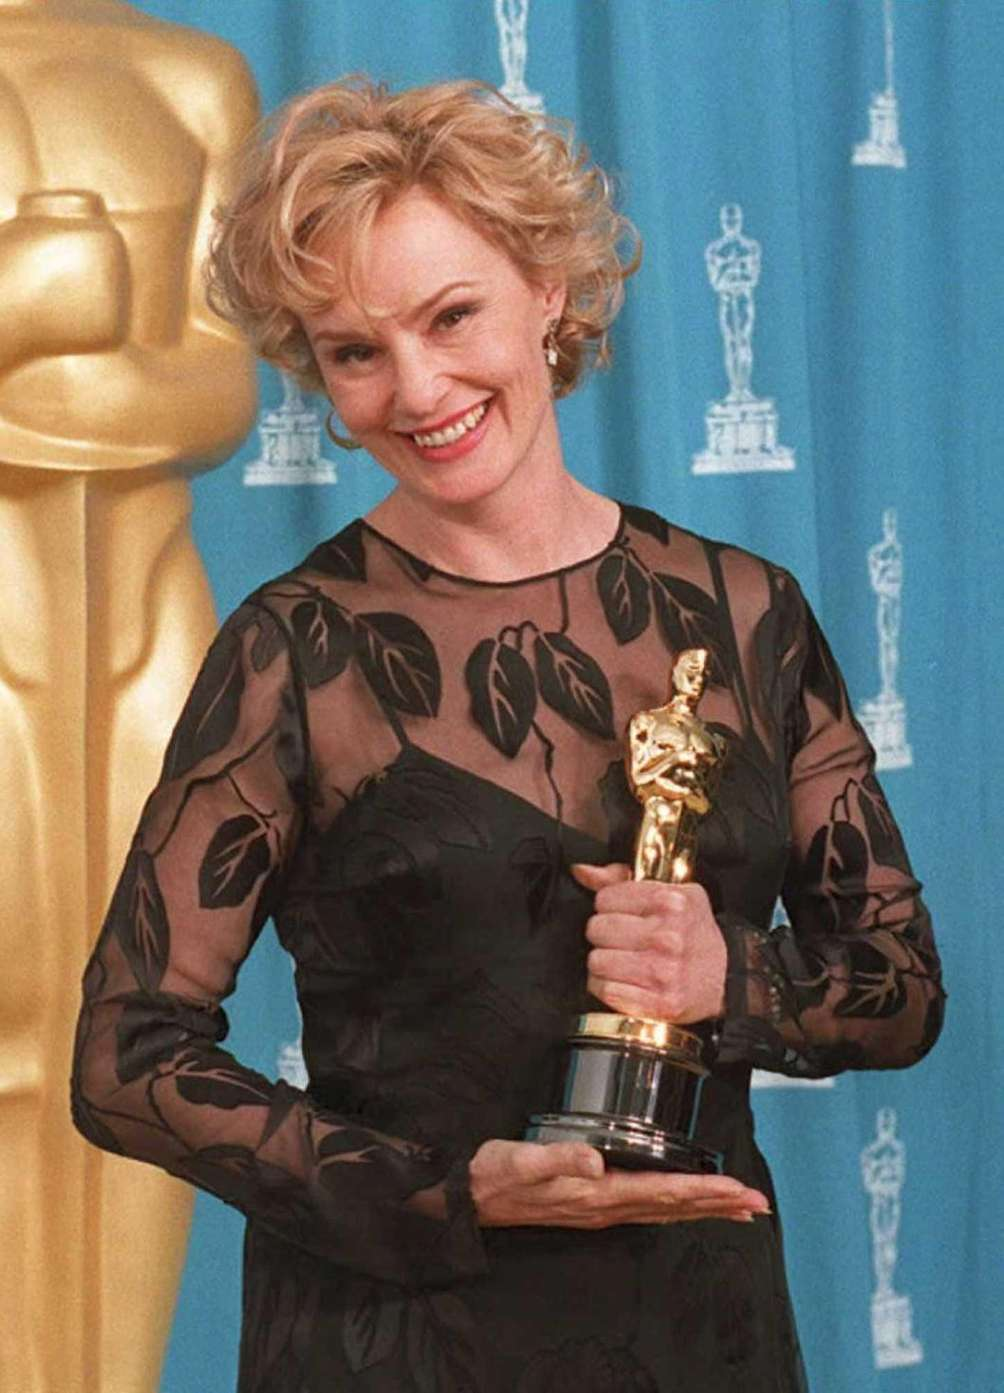 Actor Jessica Lange, holding the Oscar statuette she